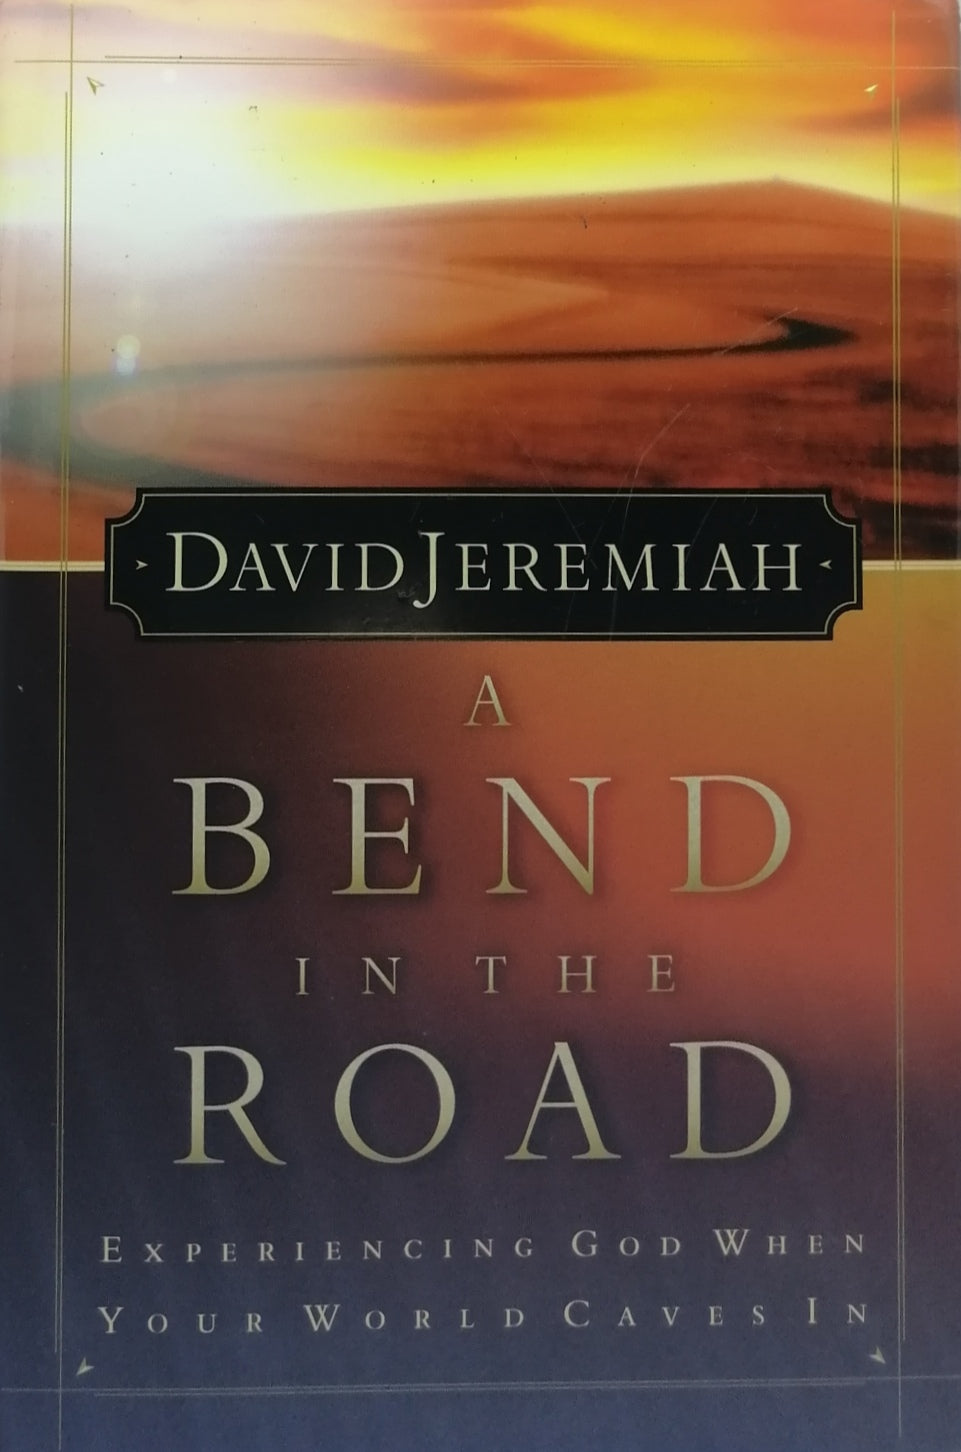 A bend in the road by David Jeremiah